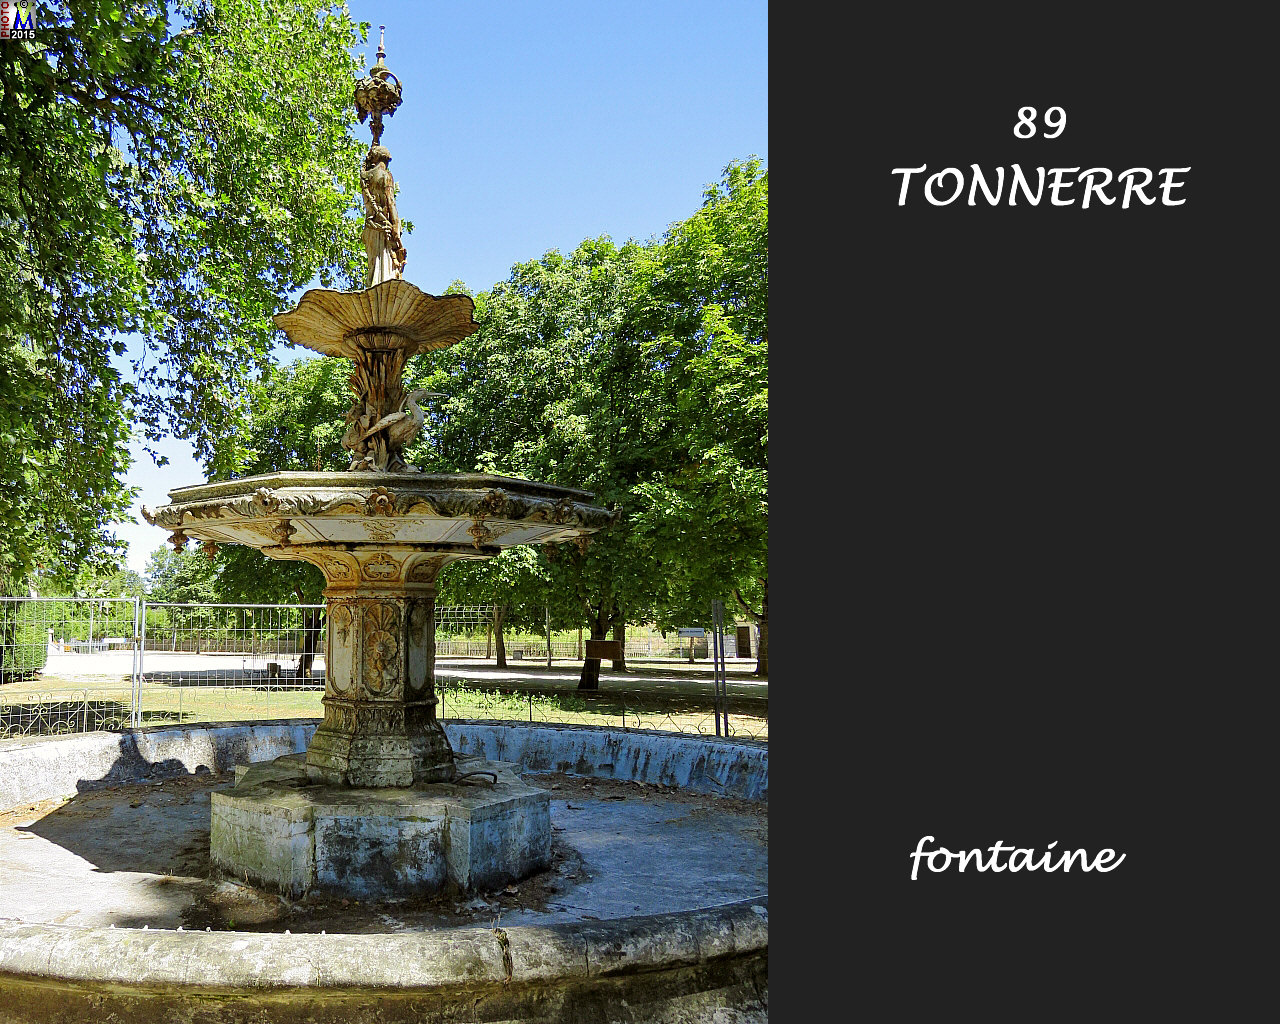 89TONNERRE_fontaine_110.jpg